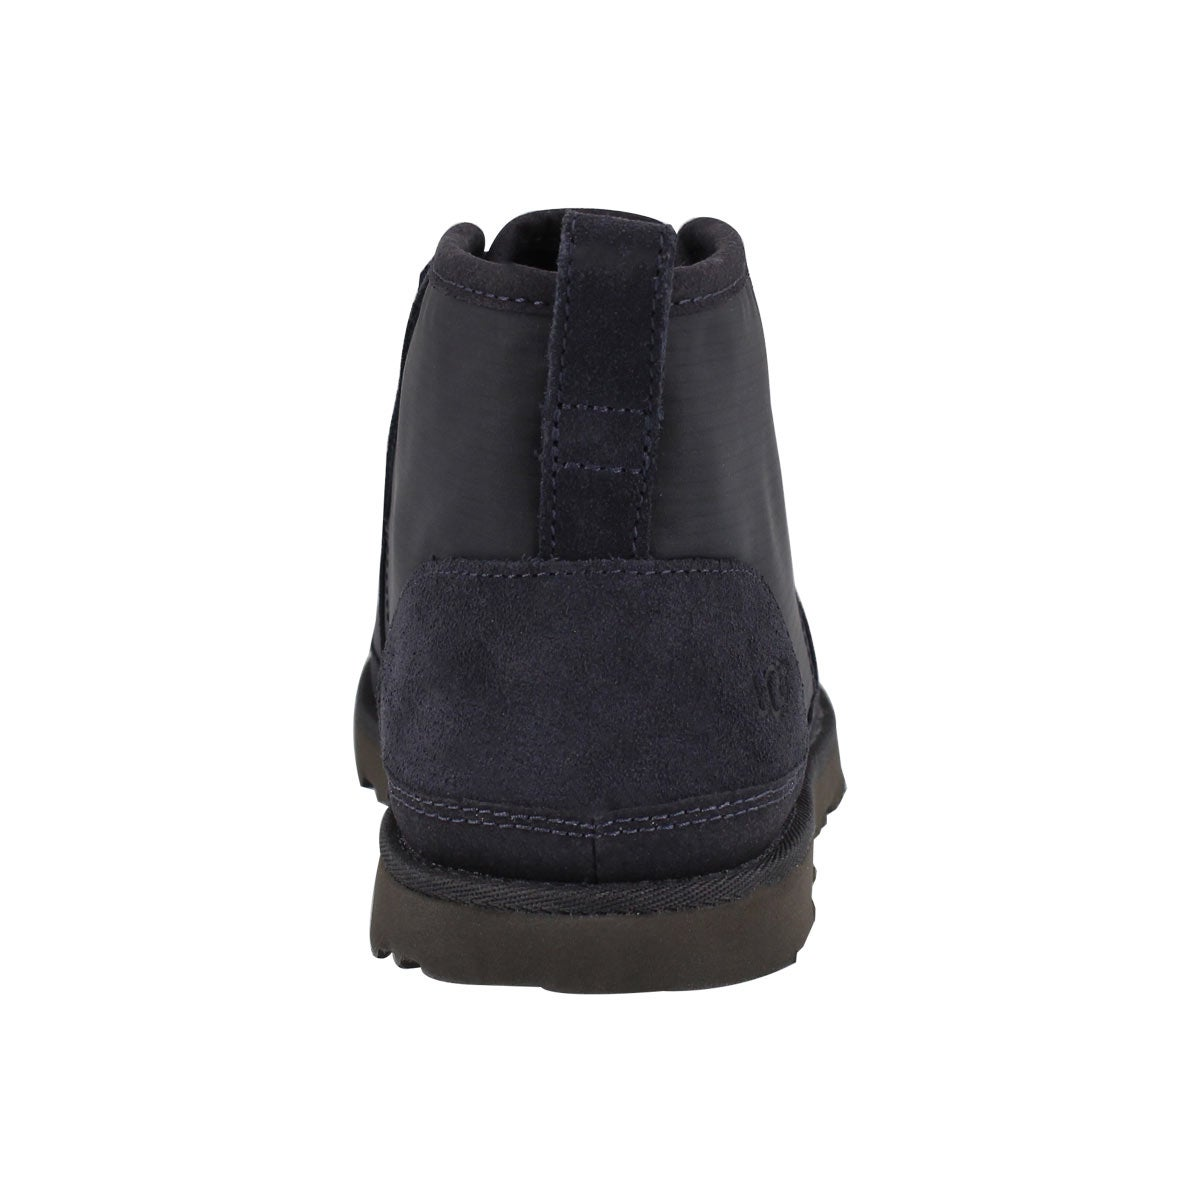 Mns Neumel Ripstop true navy ankle boot